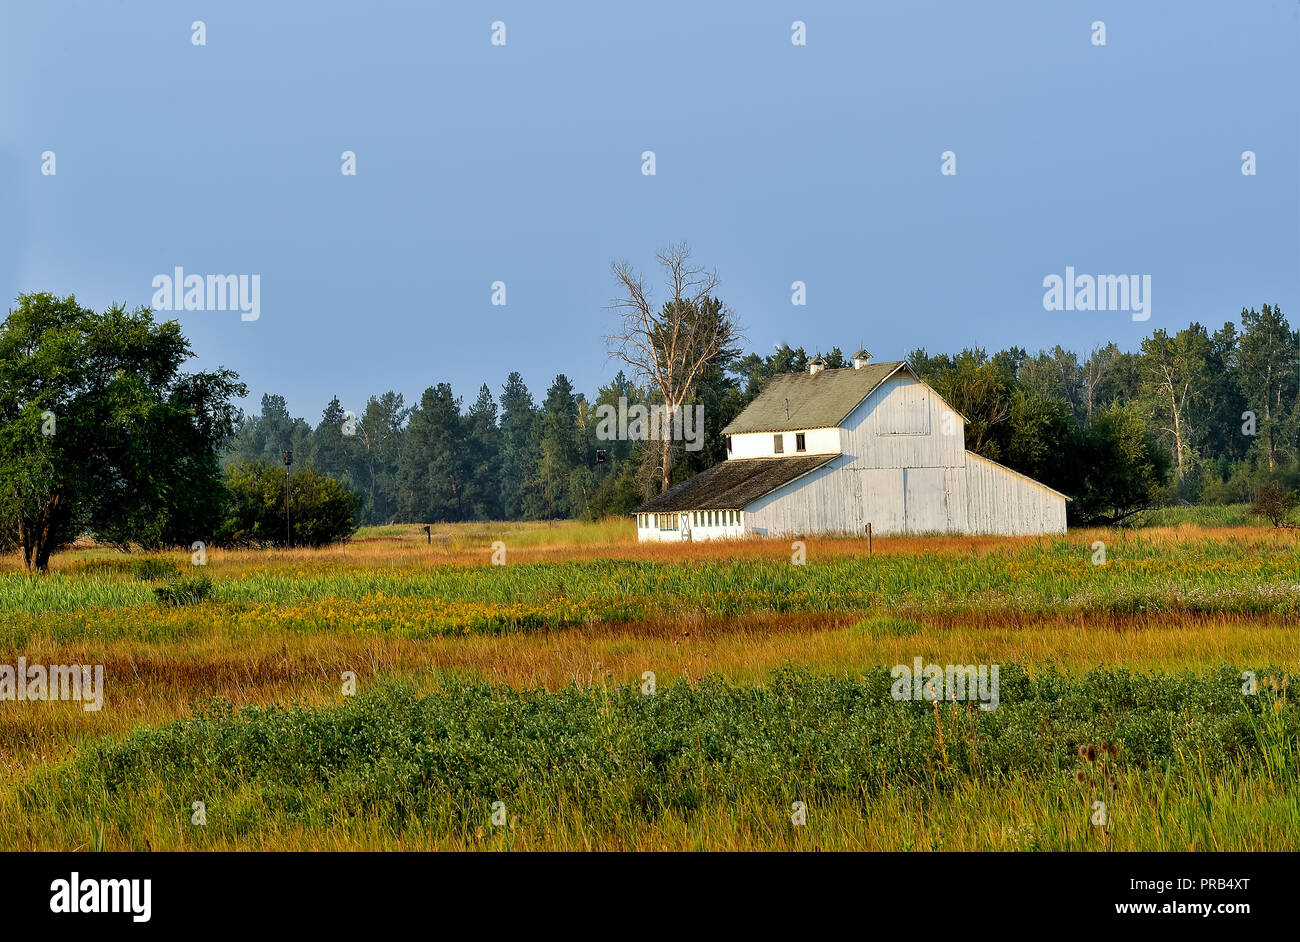 A white barn and  foliage in the Lee Metcalf National Wildlife Refuge. This tranquil scene is near Stevensville, Montana - Stock Image